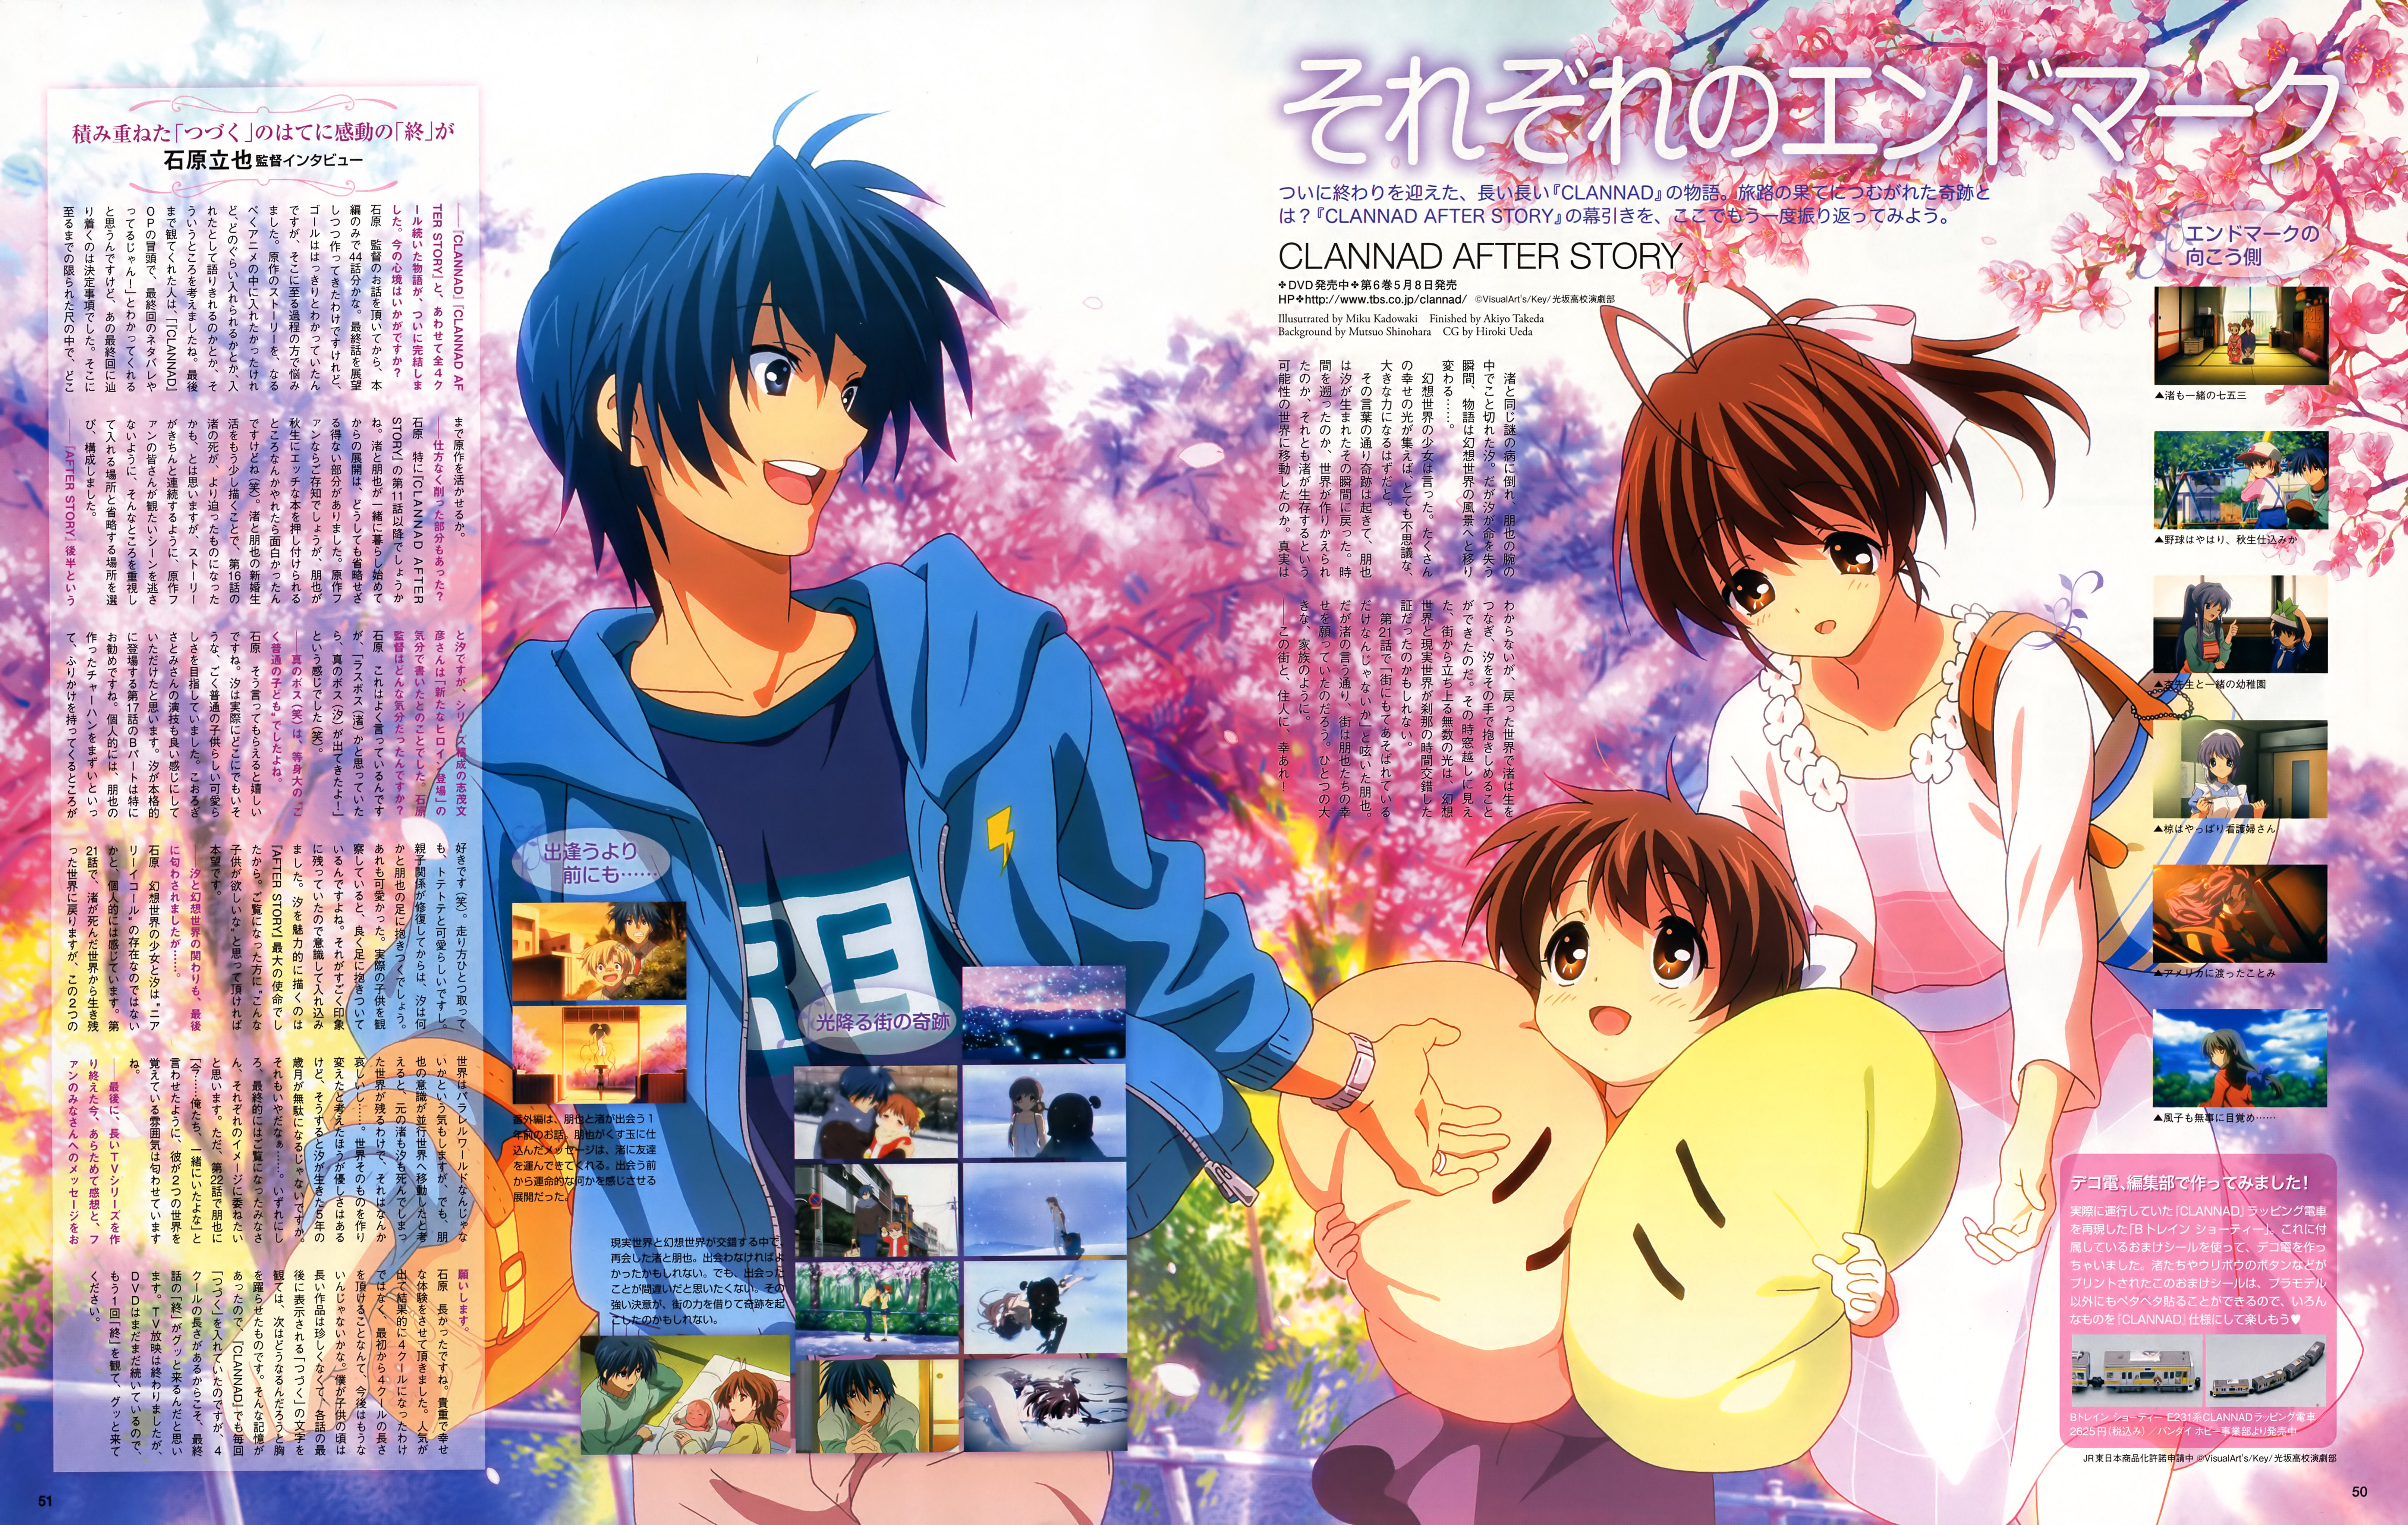 Clannad After Story Wallpaper 75 images